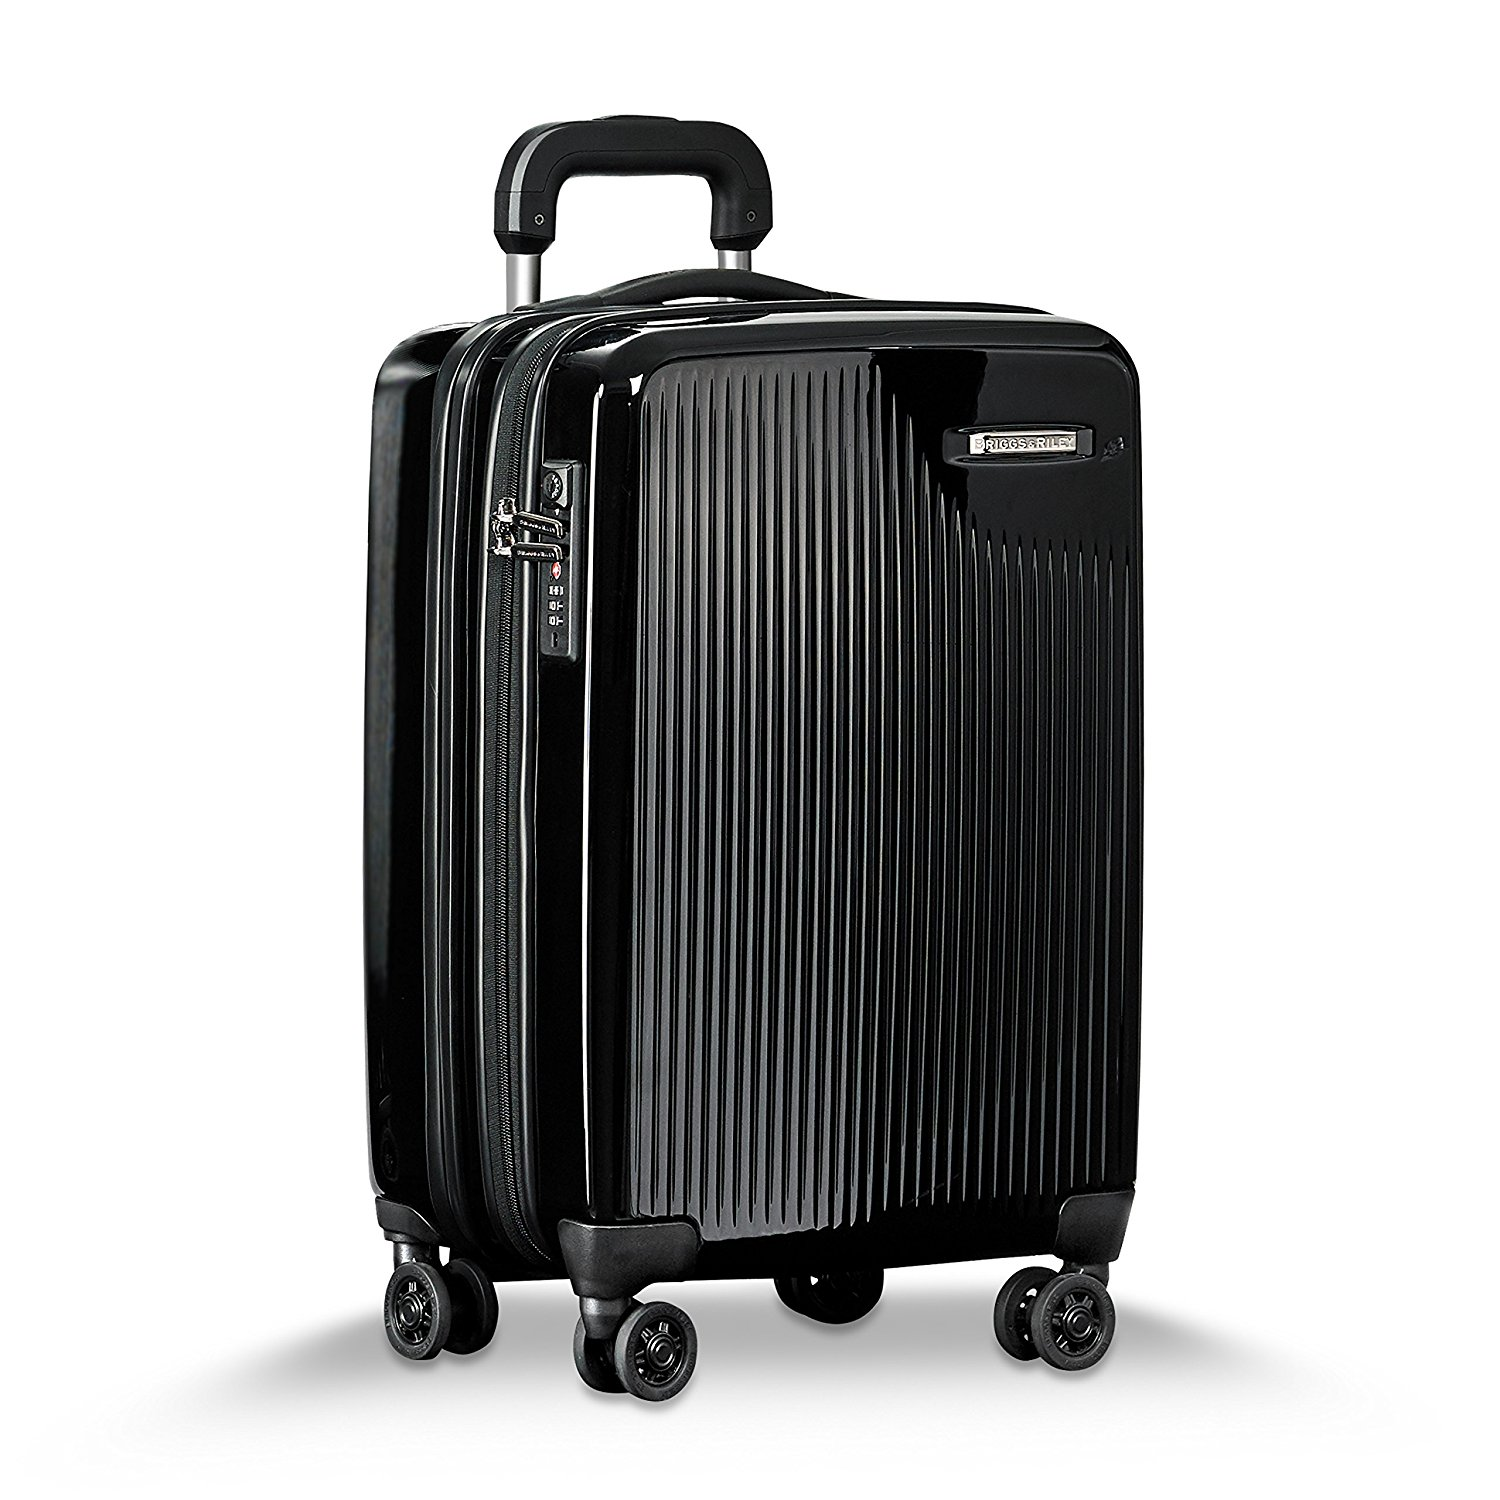 Briggs & Riley Sympatico International Carry-On Expandable Spinner, 55cm, 53 litres, Onyx Koffer, 54 cm, liters, Schwarz (Onyx)